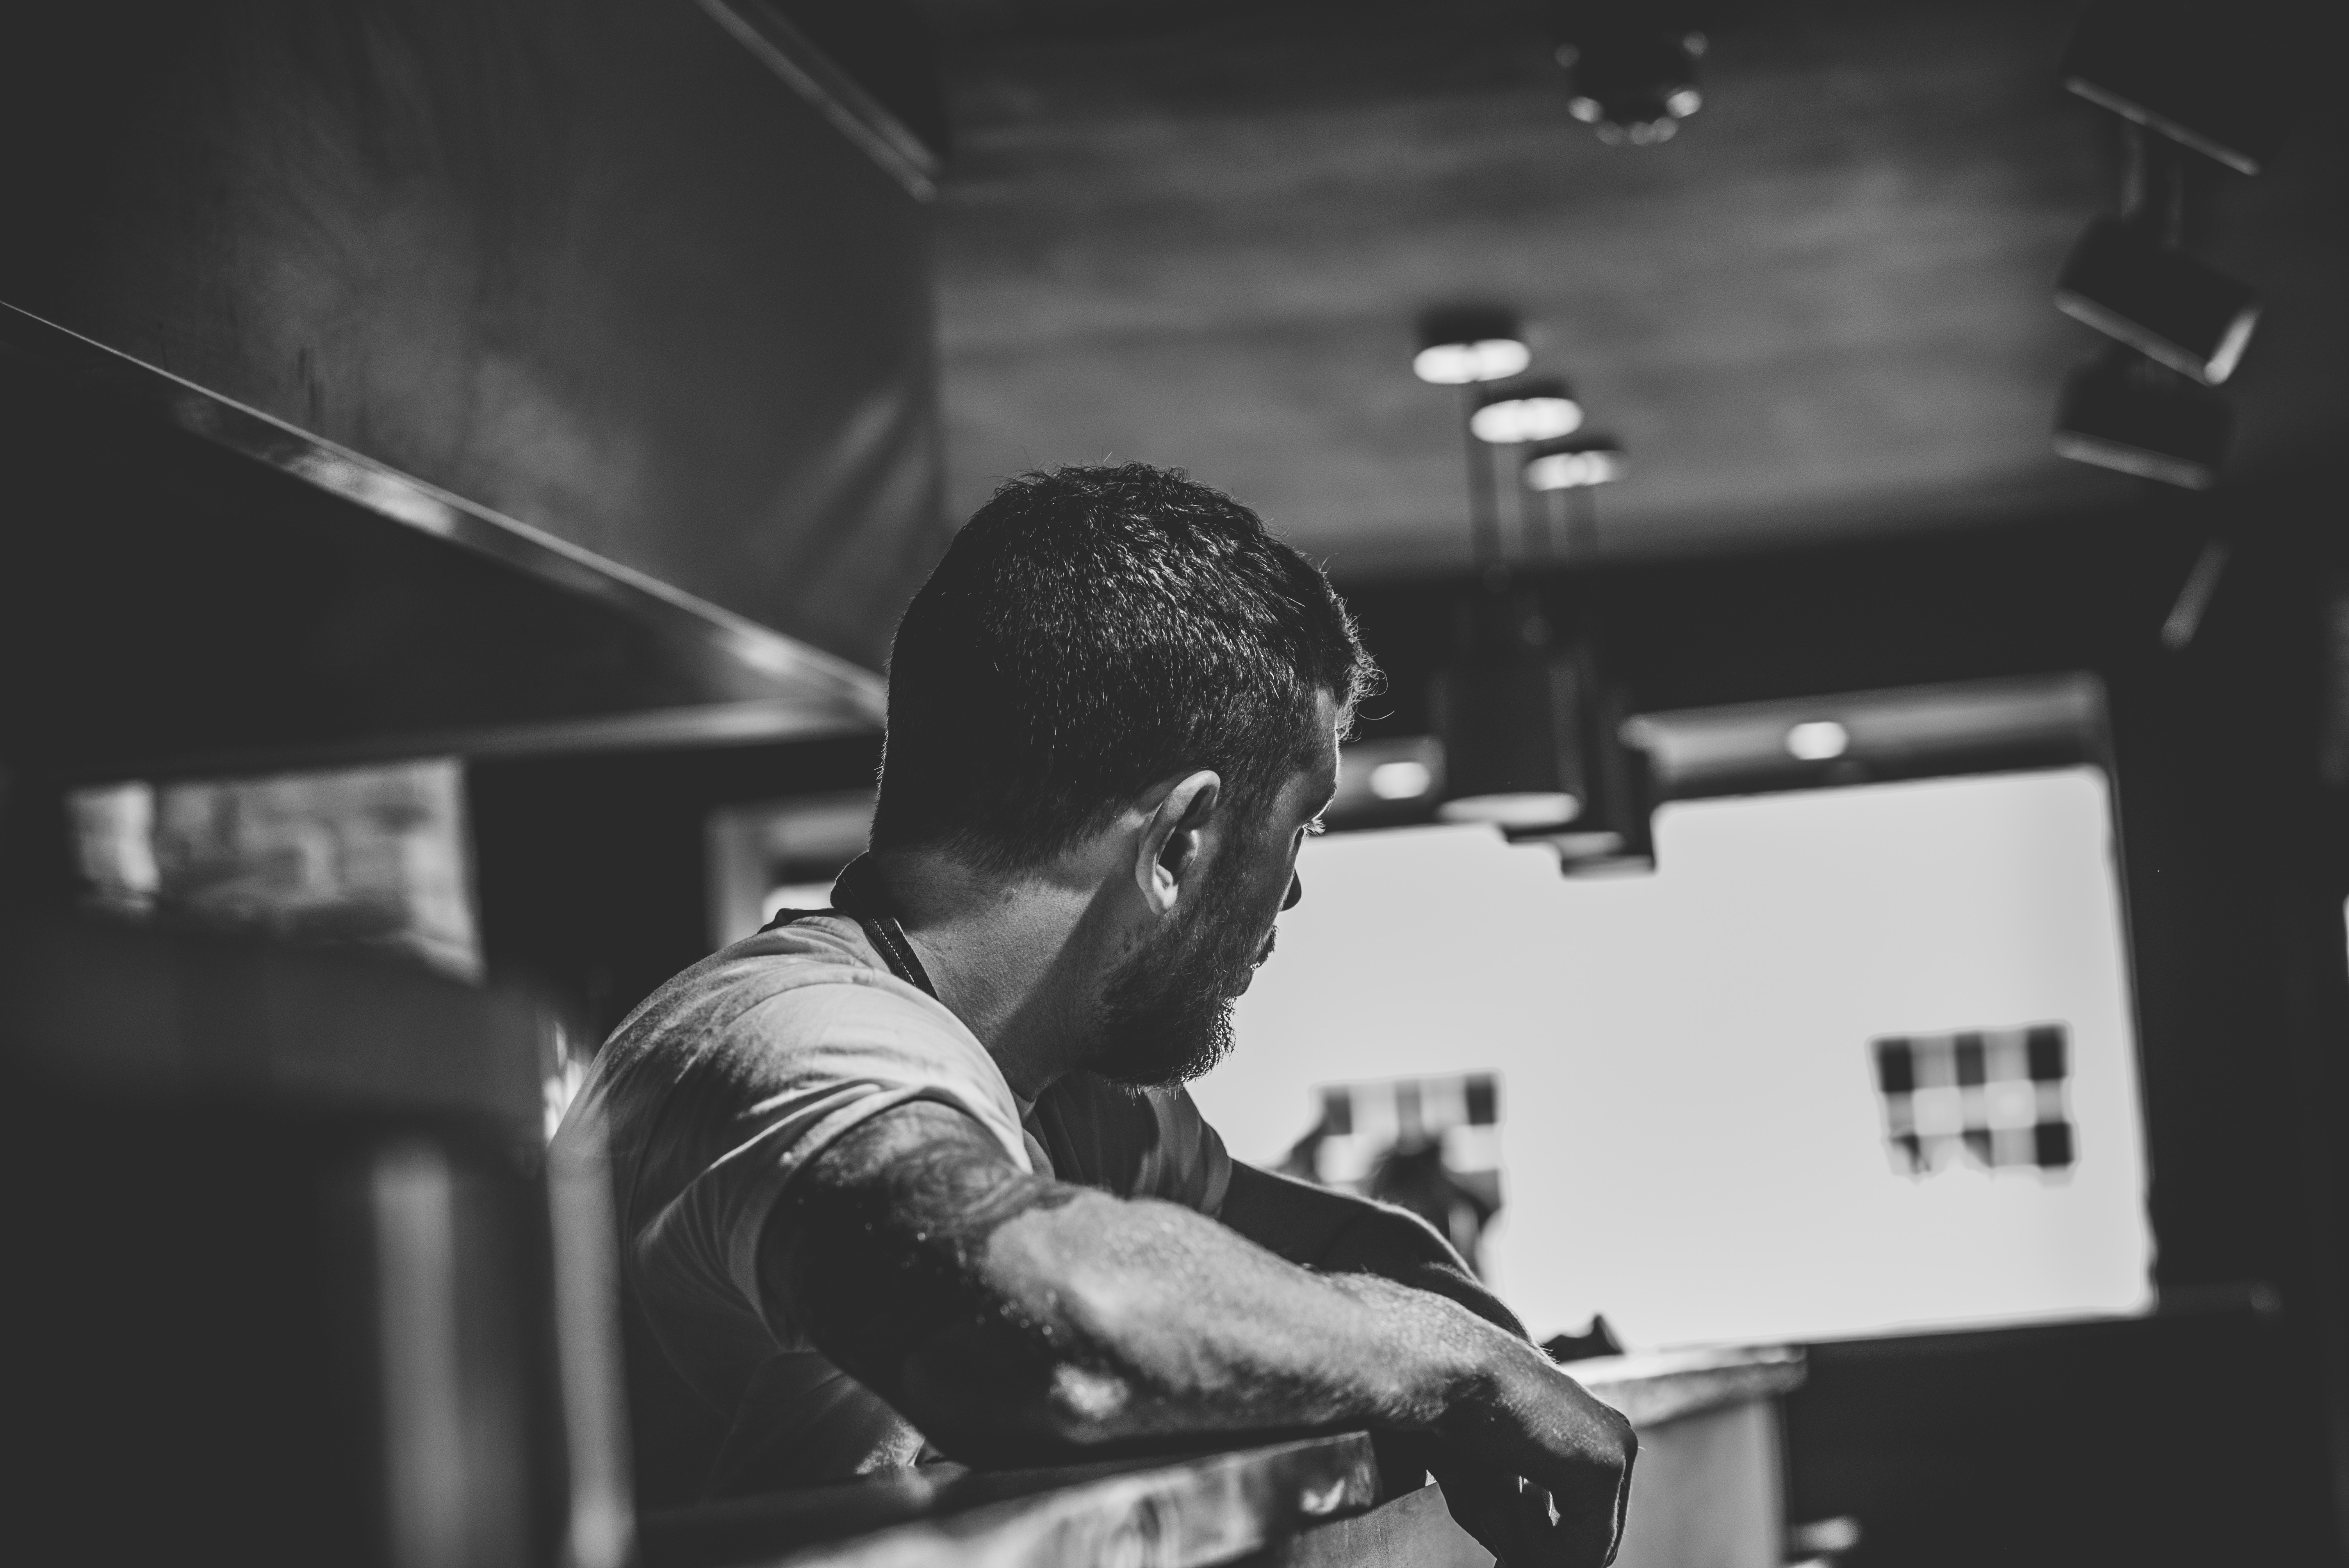 Chef in commercial restaurant kitchen looking at back-of-house